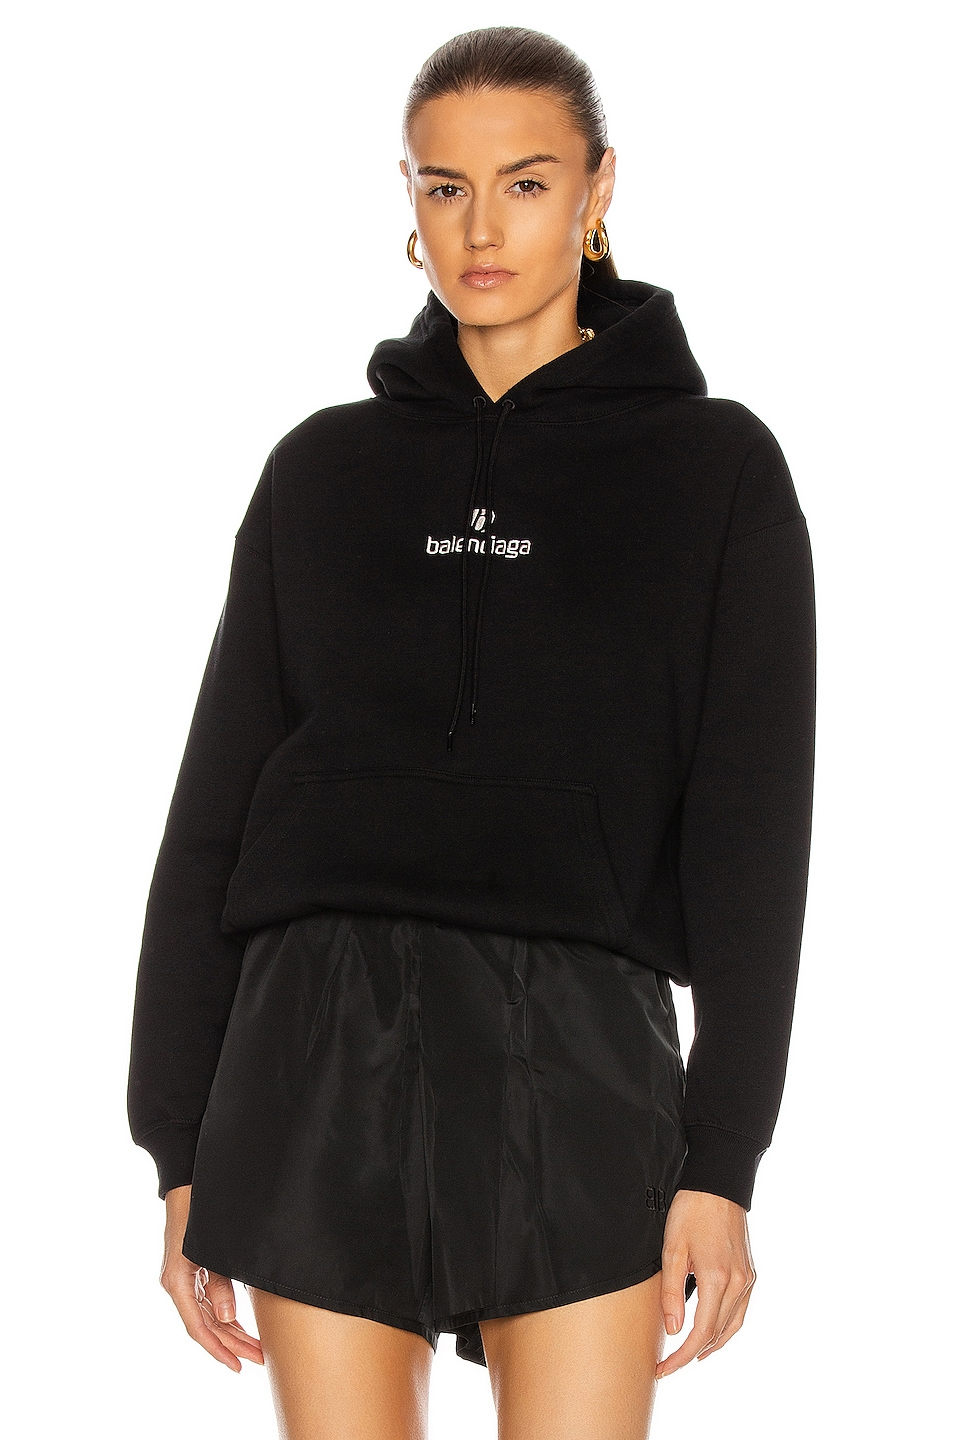 Image 1 of Balenciaga Small Fit Hoodie in Black & Chalky White